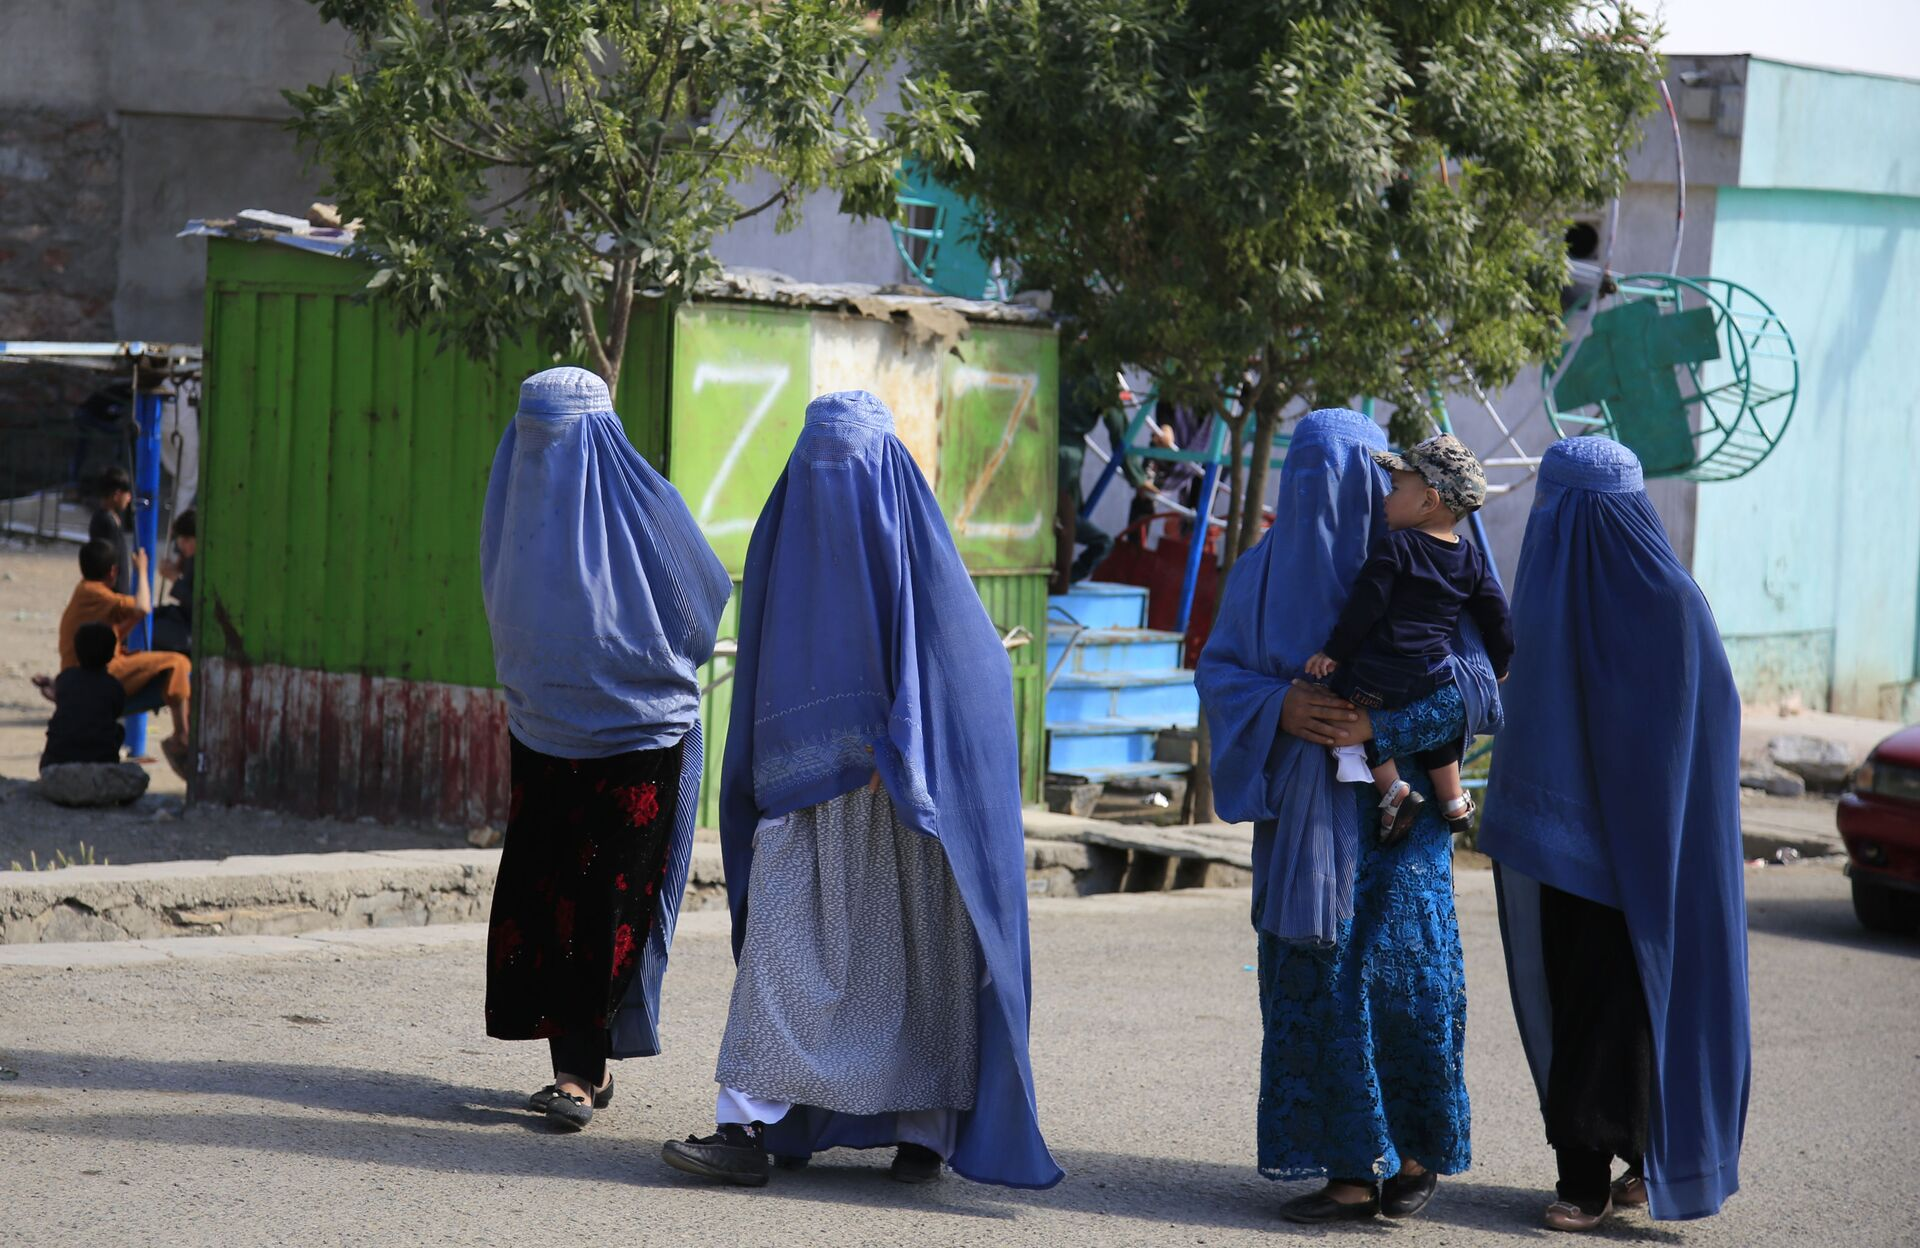 Afghan women walk on the road during the first day of Eid al-Fitr in Kabul, Afghanistan, Thursday, May 13, 2021 - Sputnik International, 1920, 07.09.2021